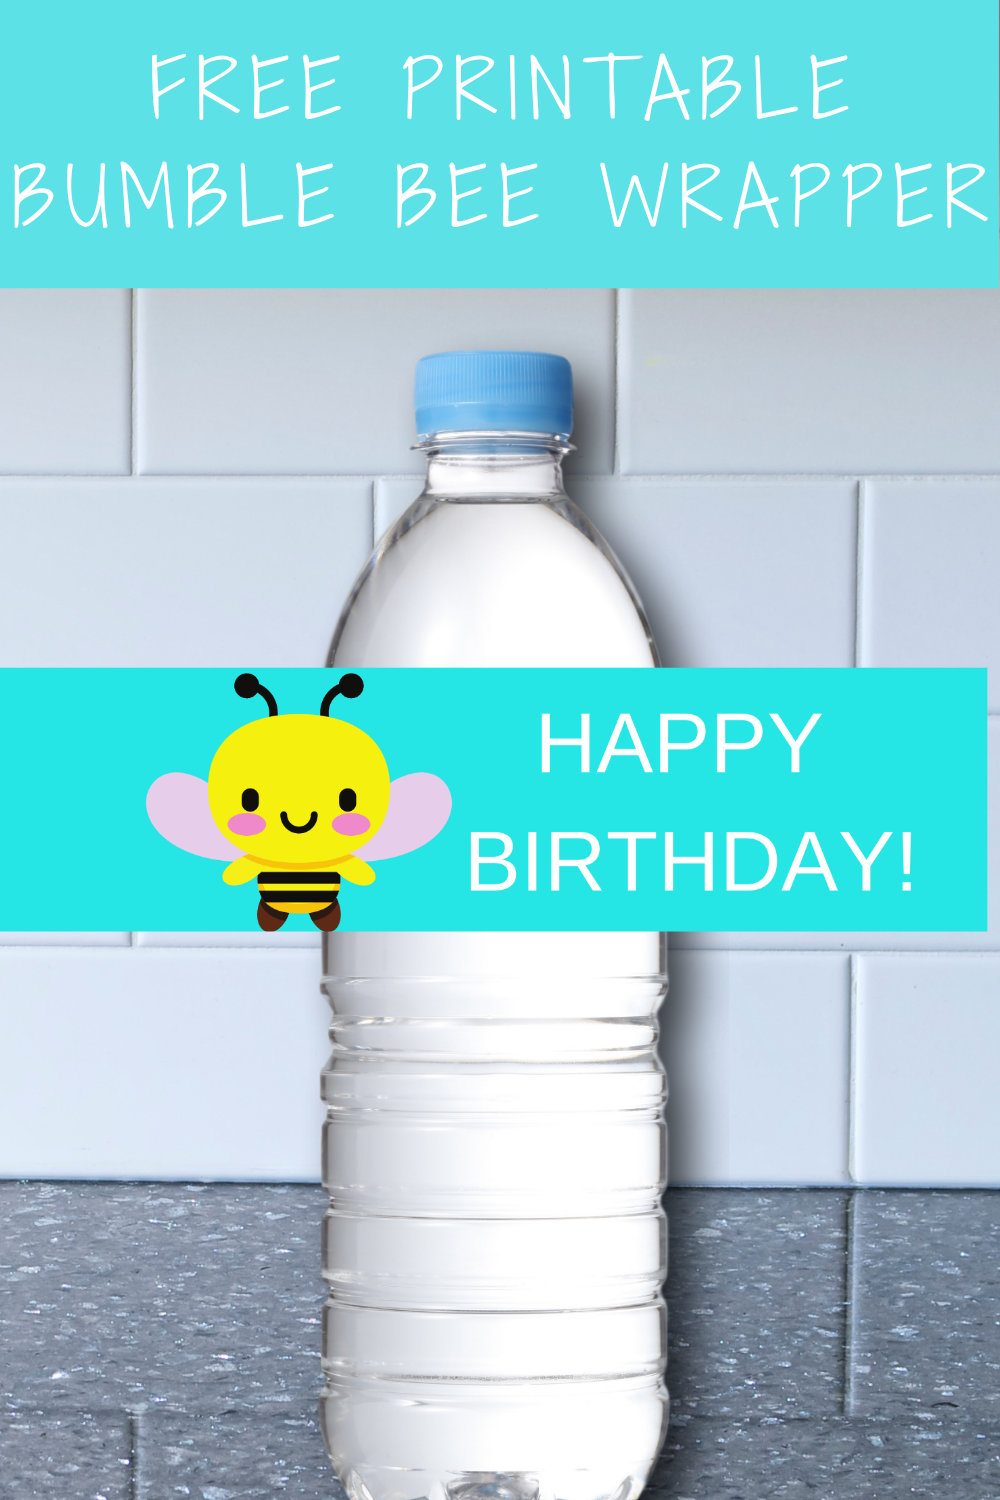 1st birthday bumble bee water bottle wrapper